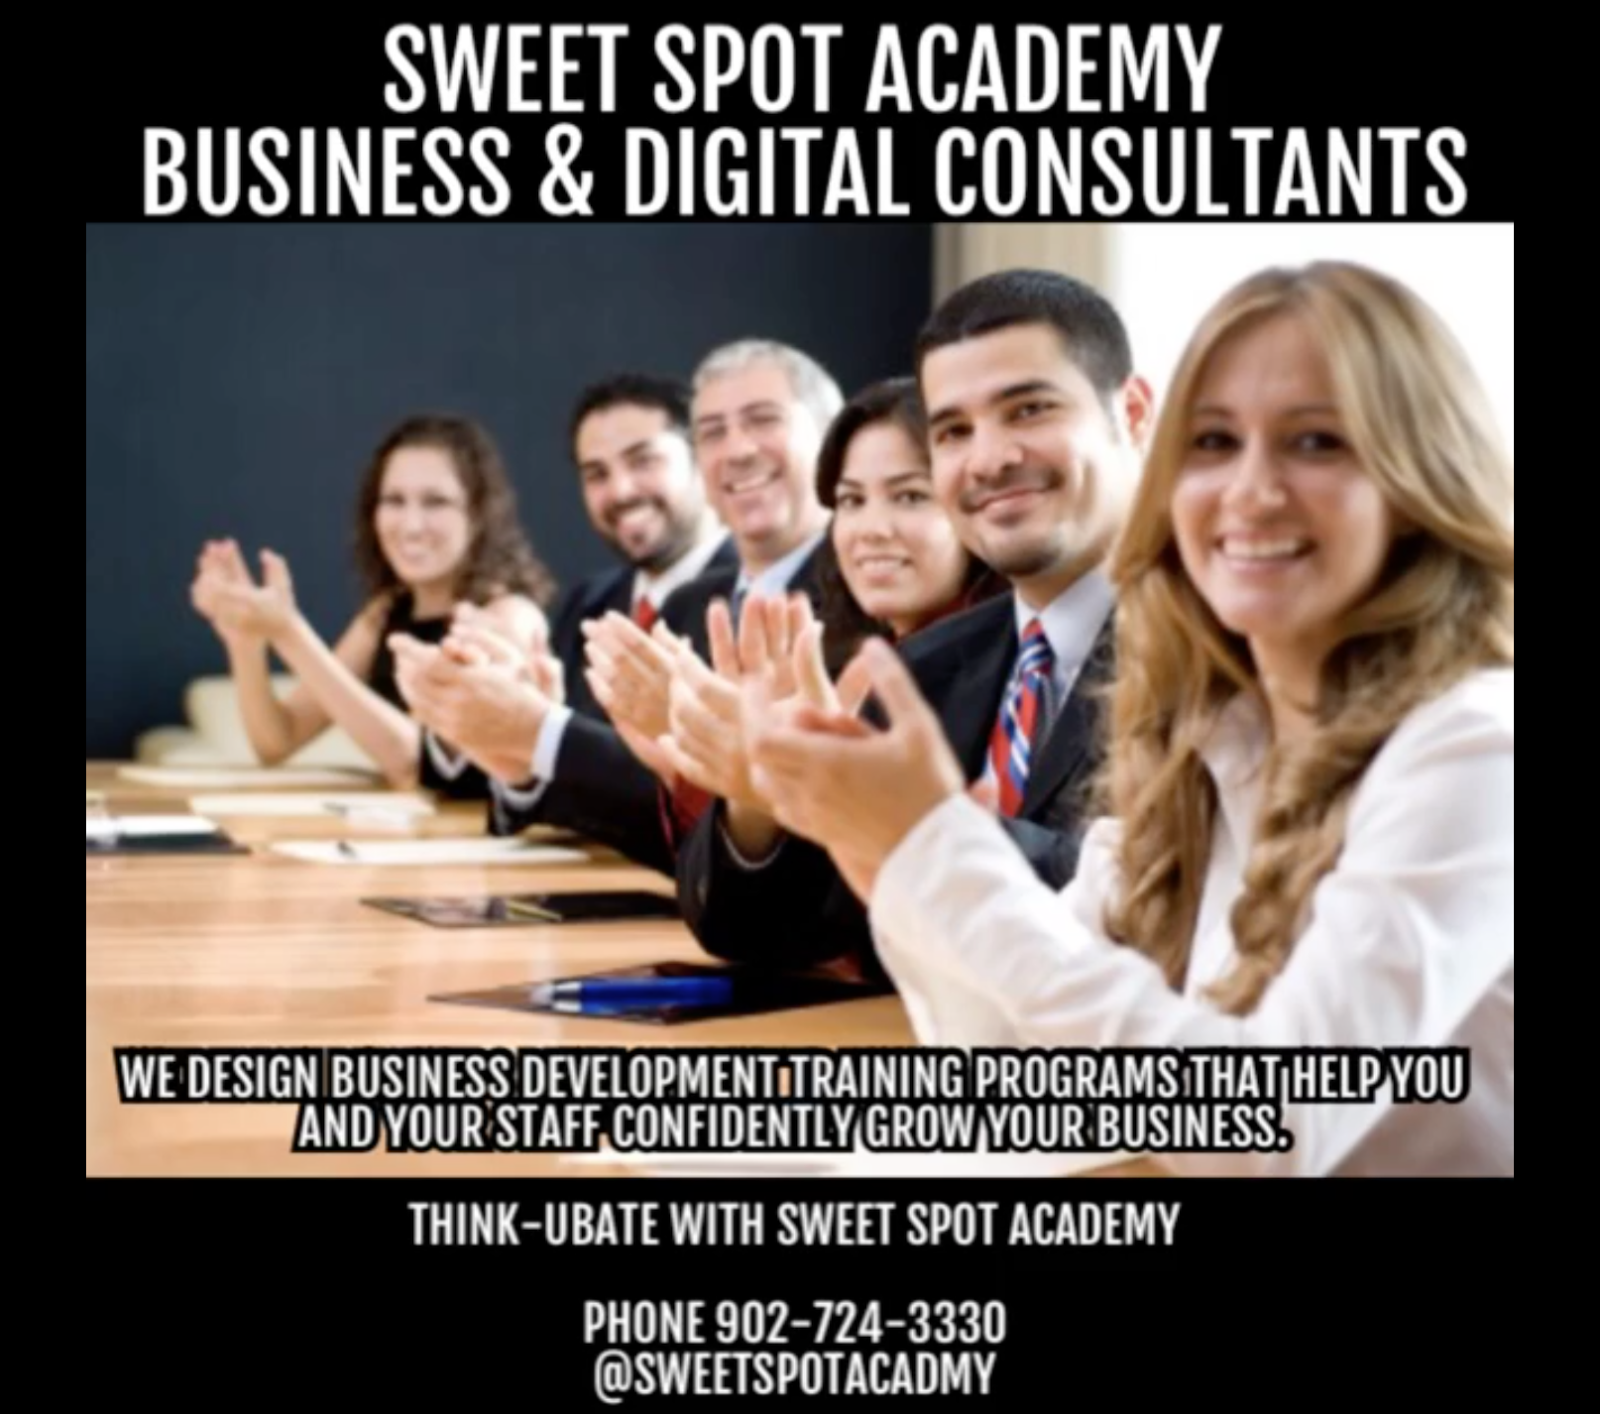 THINK-UBATE WITH SWEET SPOT ACADEMY